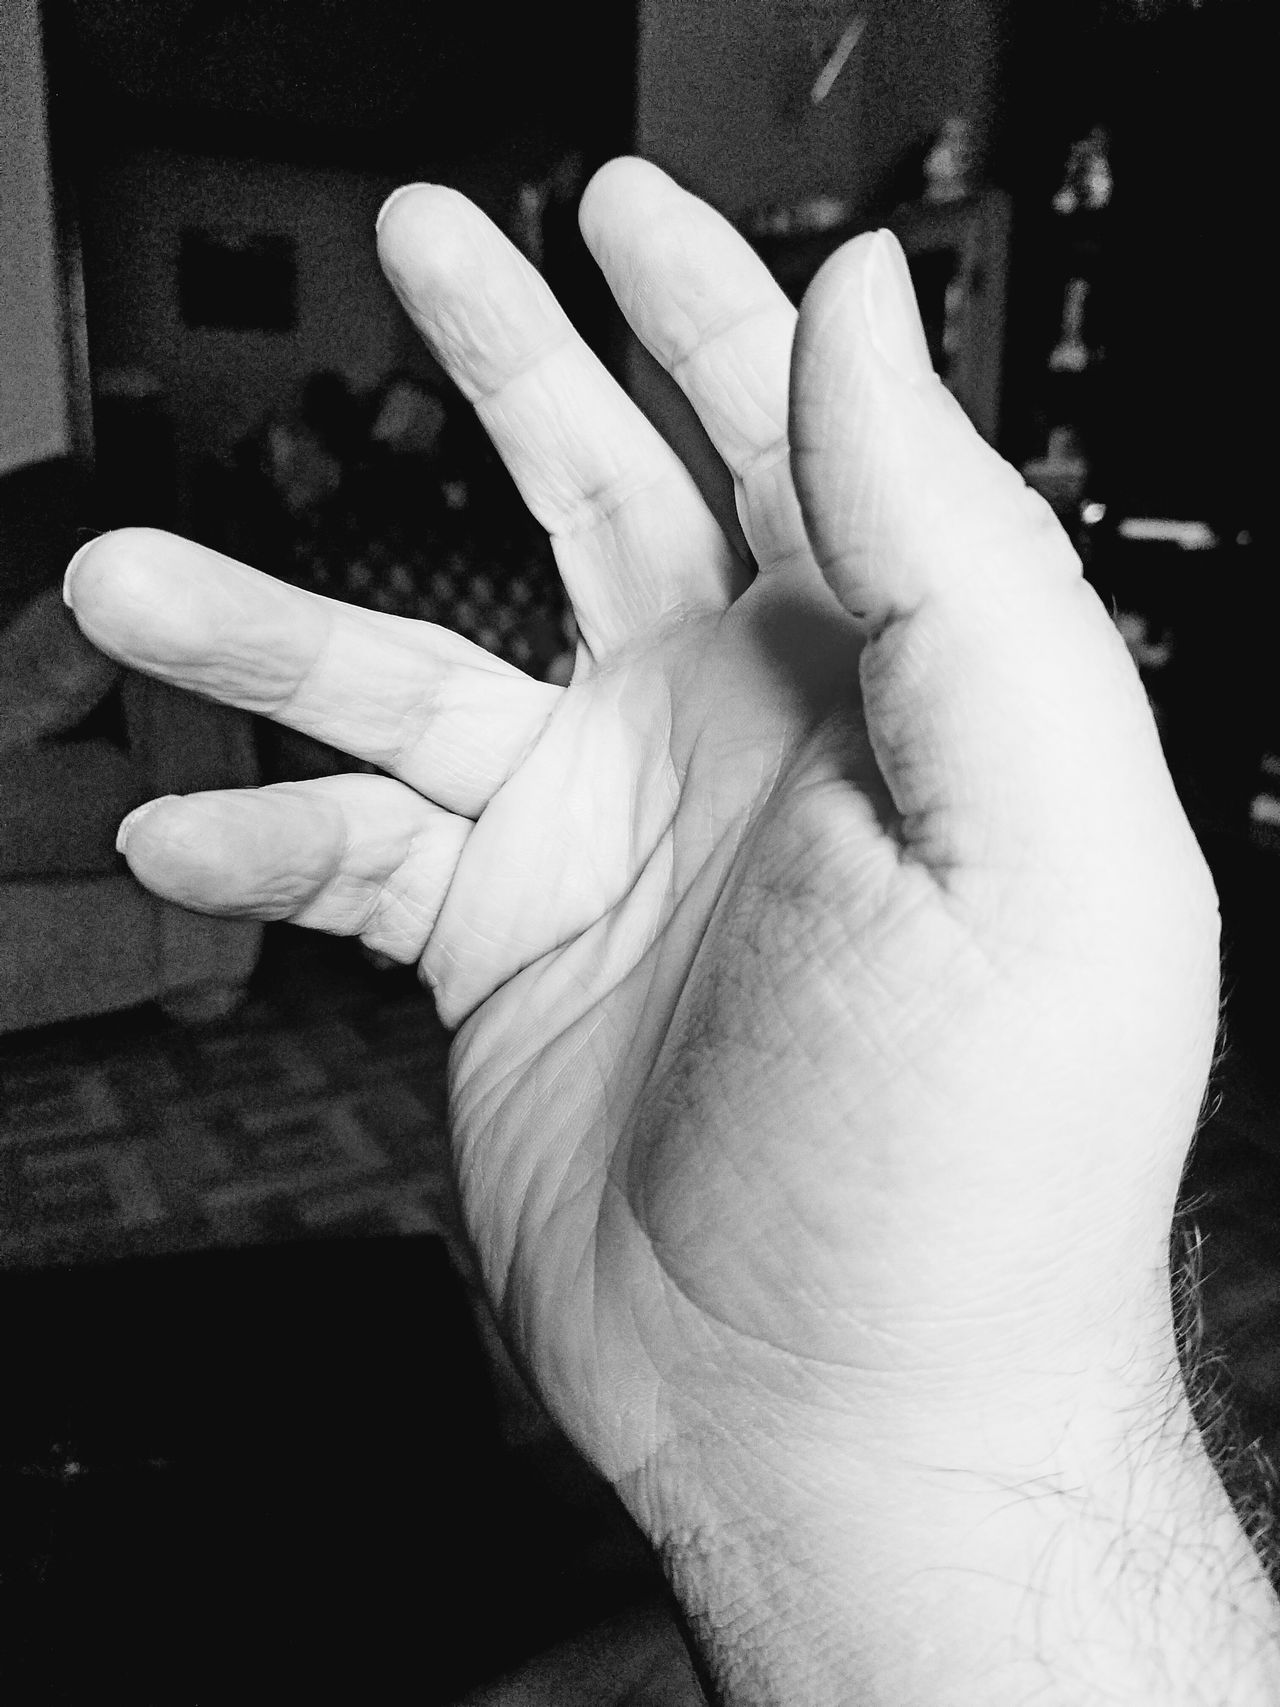 One handed Human Hand Human Body Part Real People Indoors  One Person Close-up People Day Eye4photography  Samsung Galaxy S7 Edge